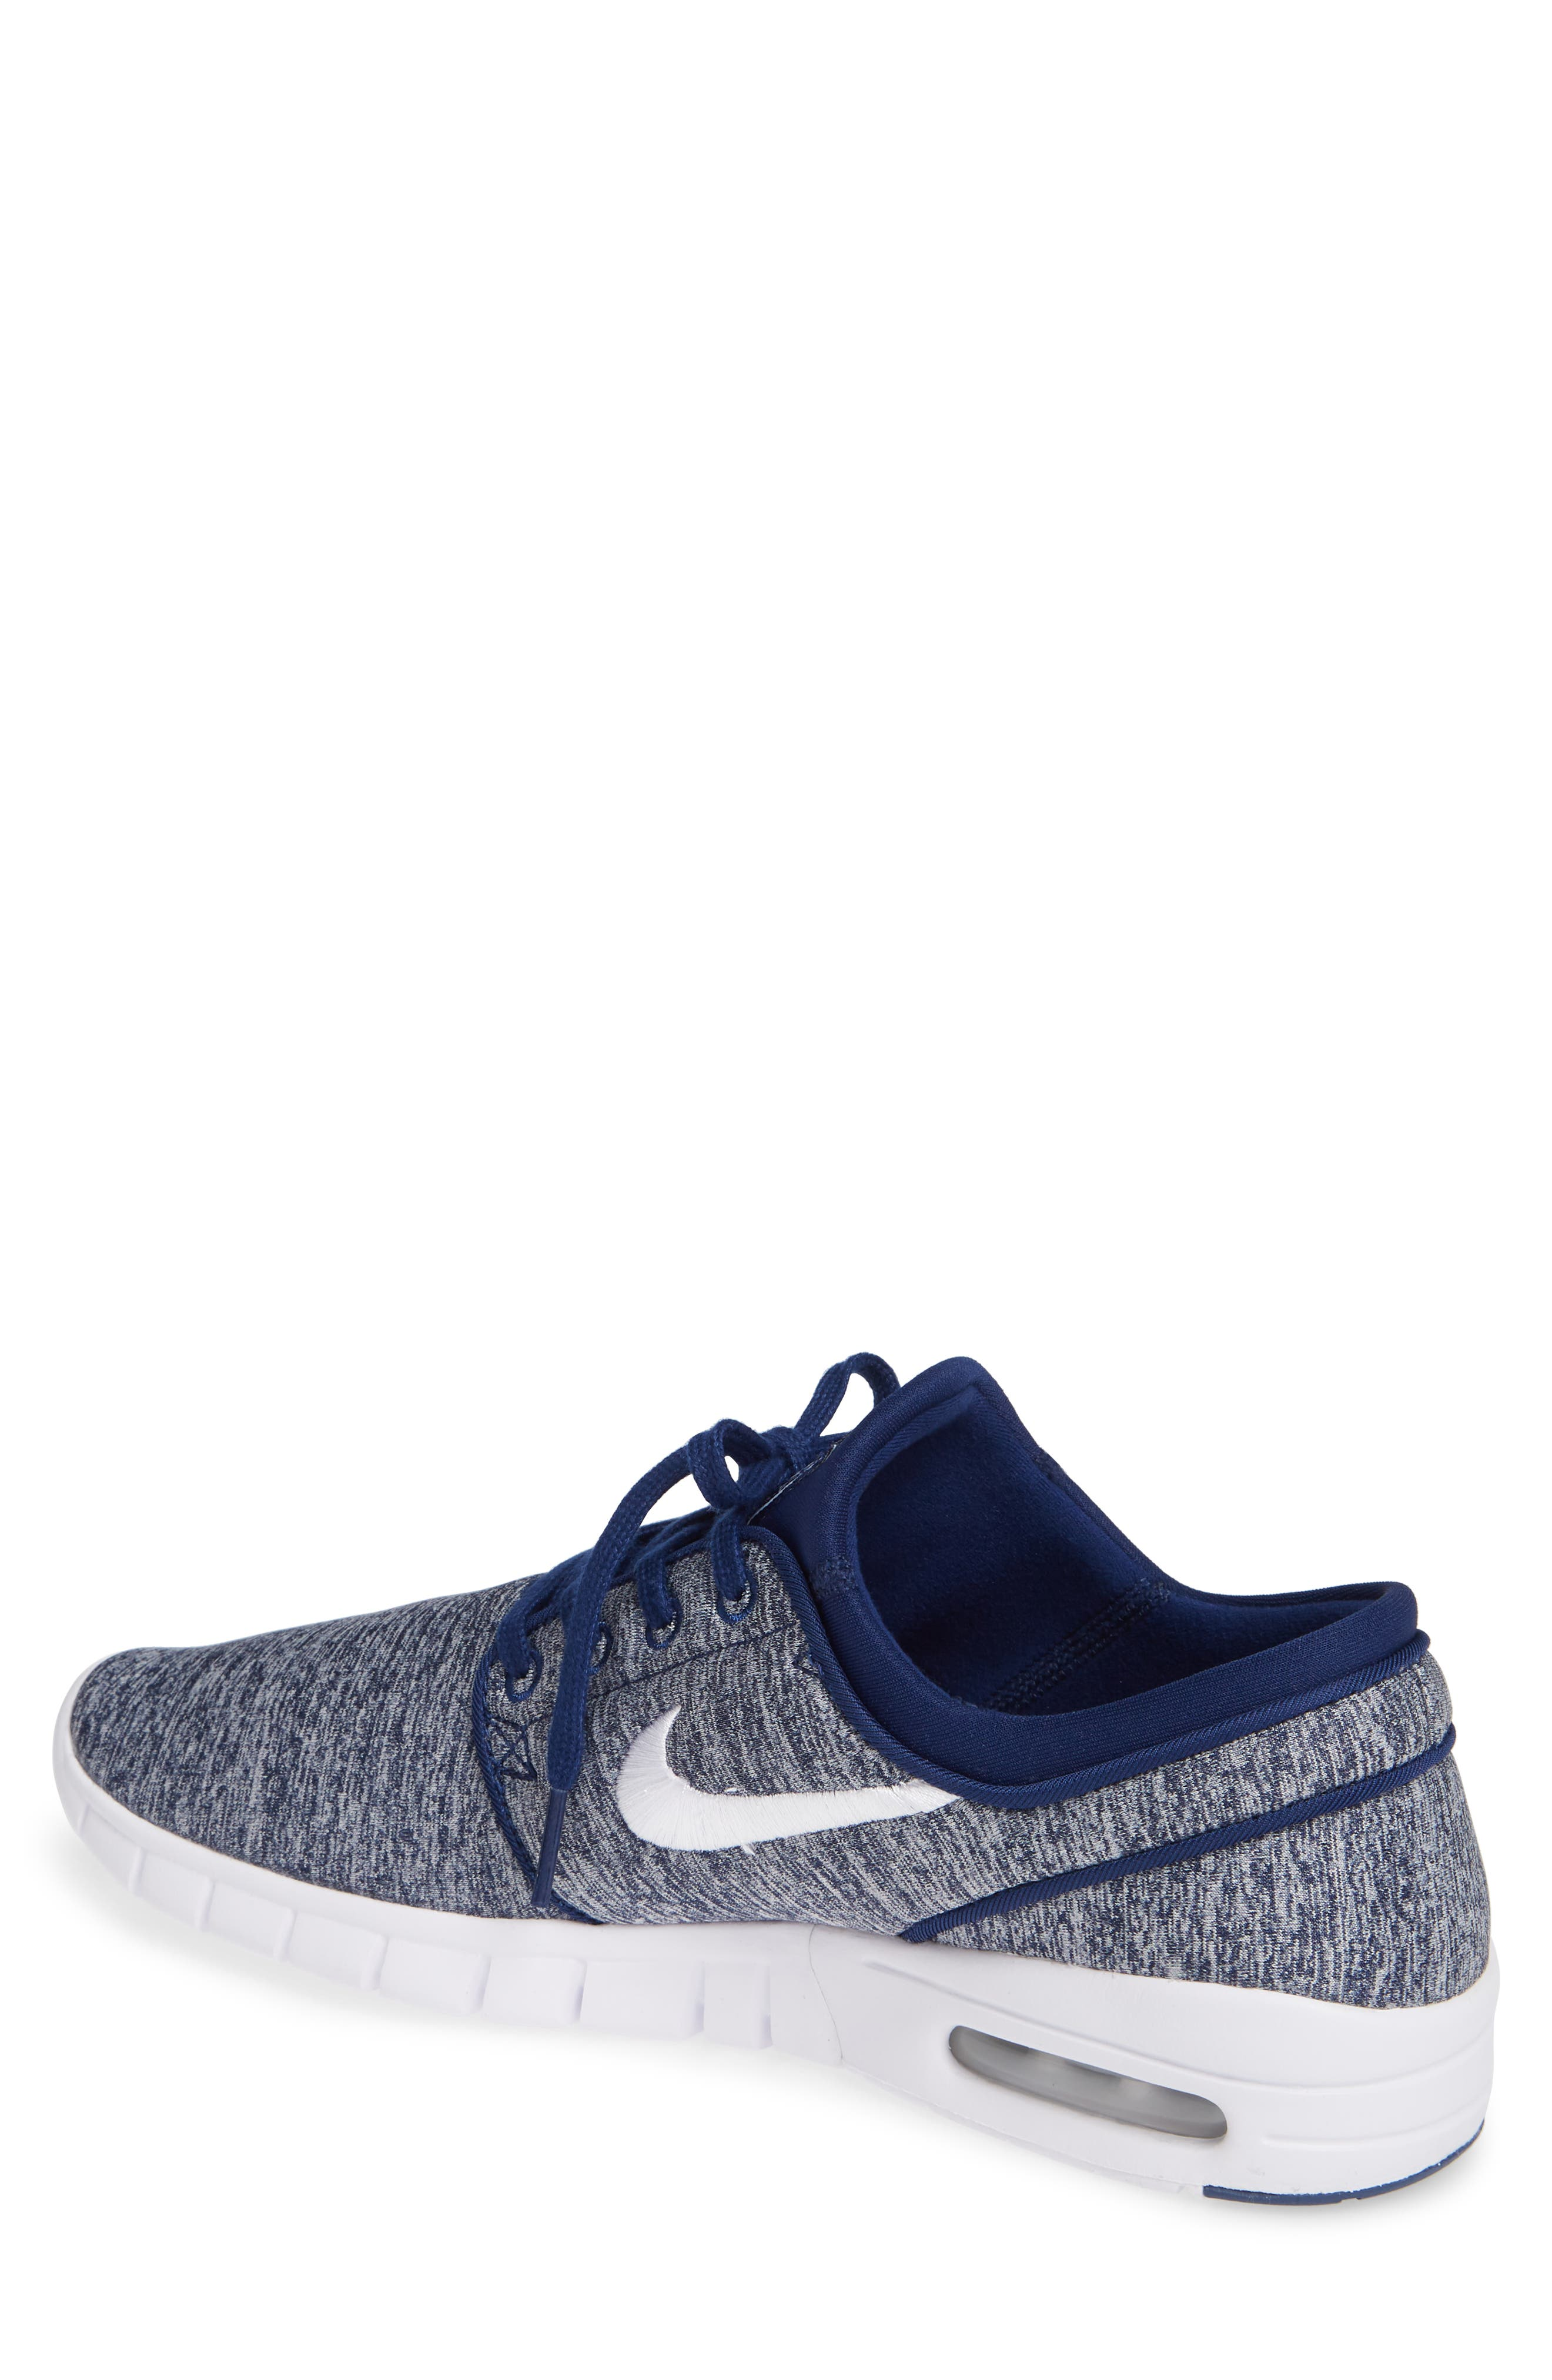 'Stefan Janoski - Max SB' Skate Shoe,                             Alternate thumbnail 2, color,                             BLUE VOID/ WHITE